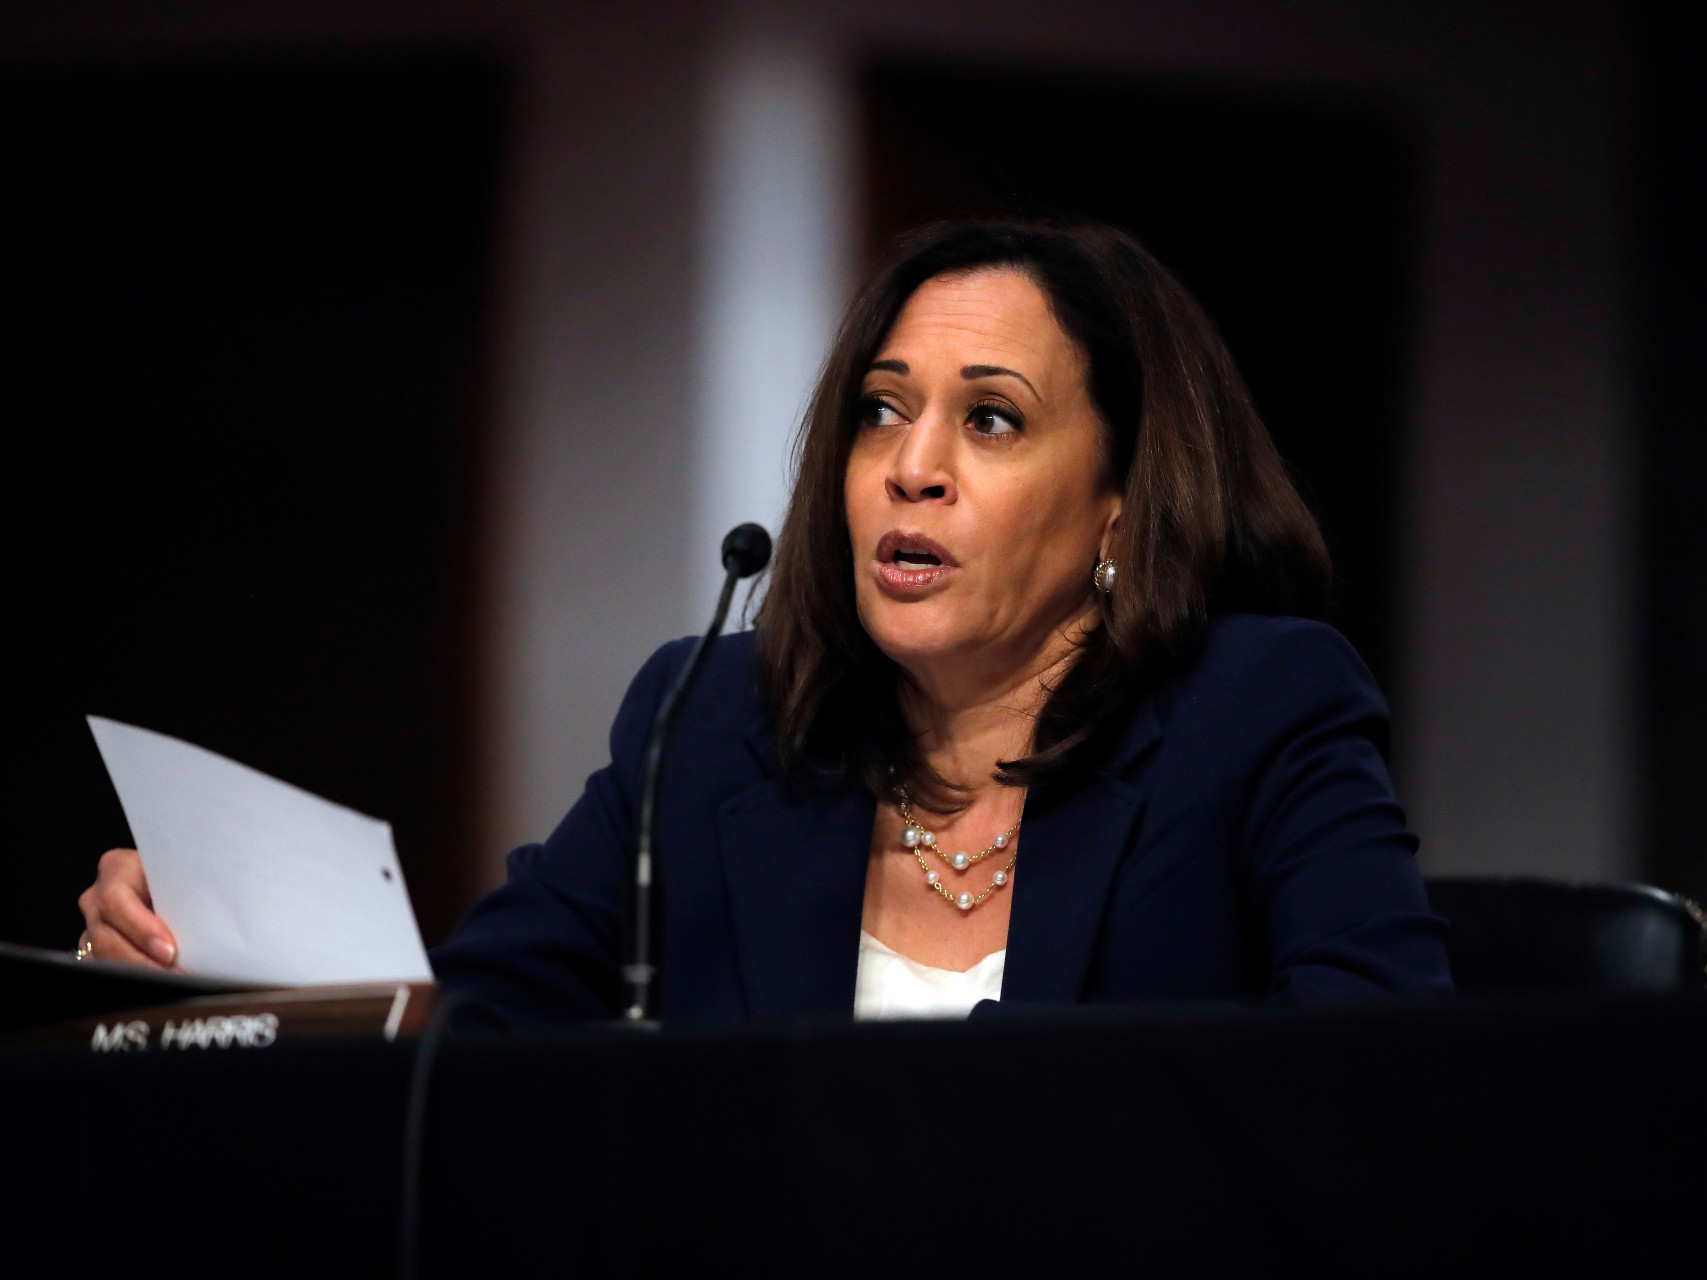 Can You Handle The Truth Politifact California Fact Checks Claims About Kamala Harris And Planned Parenthood Capradio Org